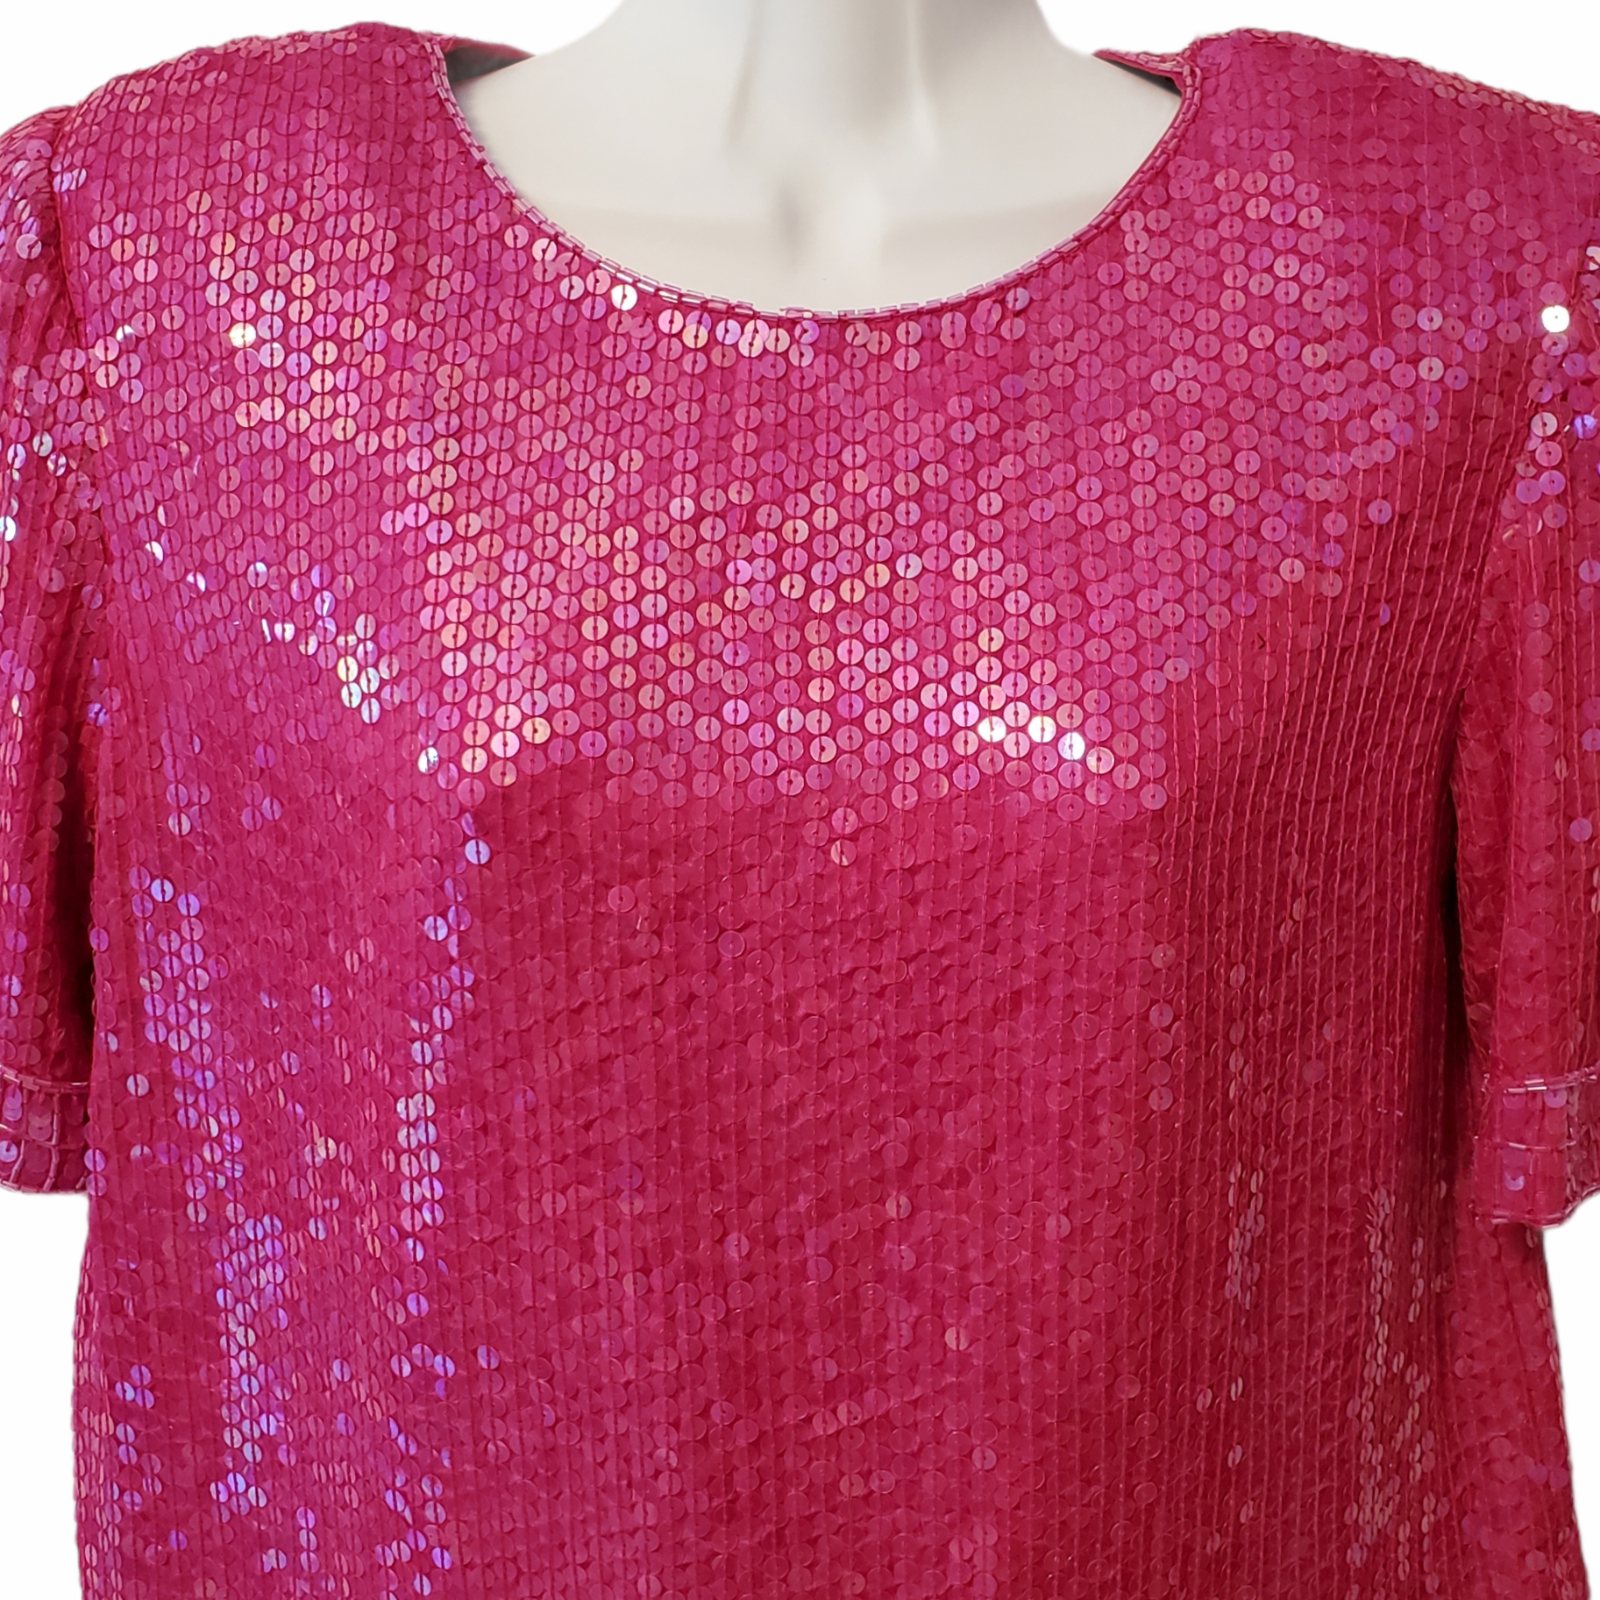 Vintage 80s Hot Pink 100% Silk Sequin Party Blouse Lined Women's S Pad Shoulders